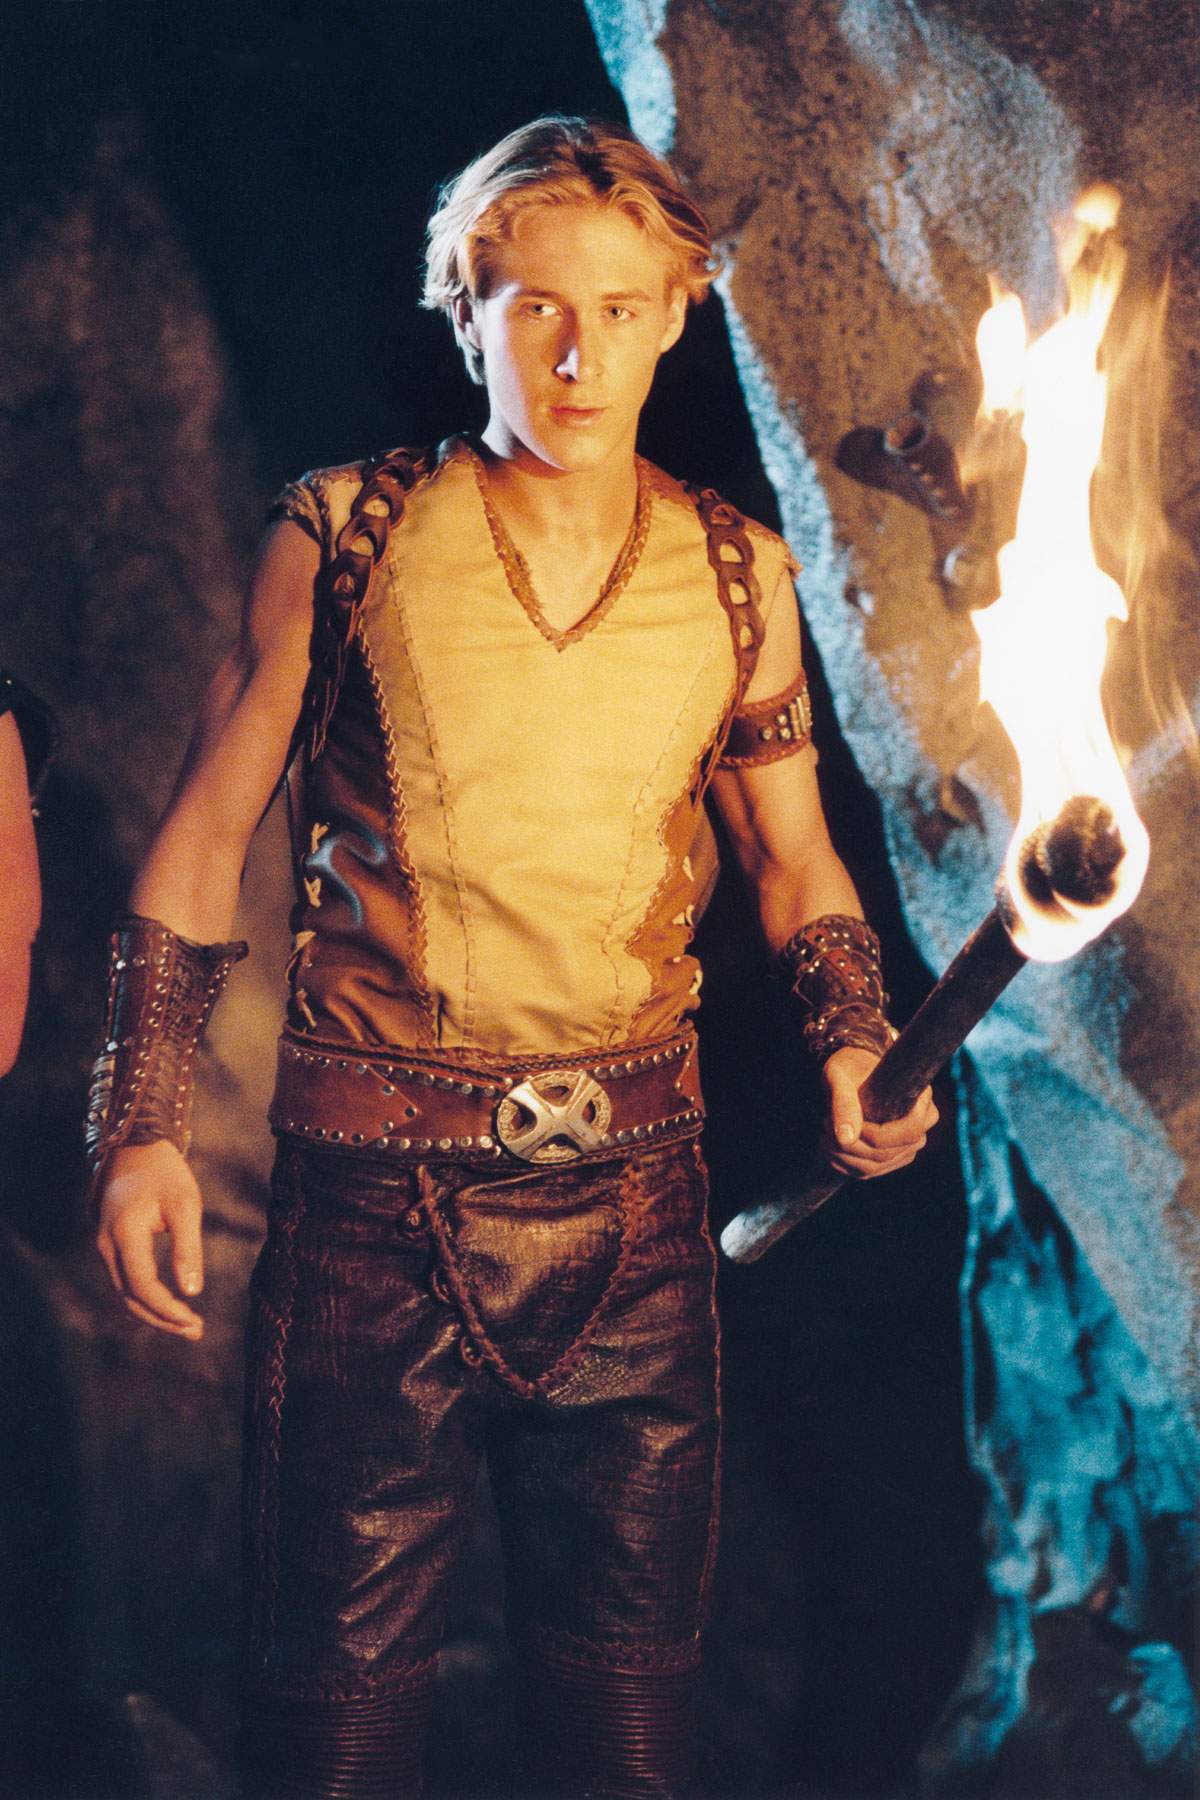 Ryan Gosling as Young Hercules